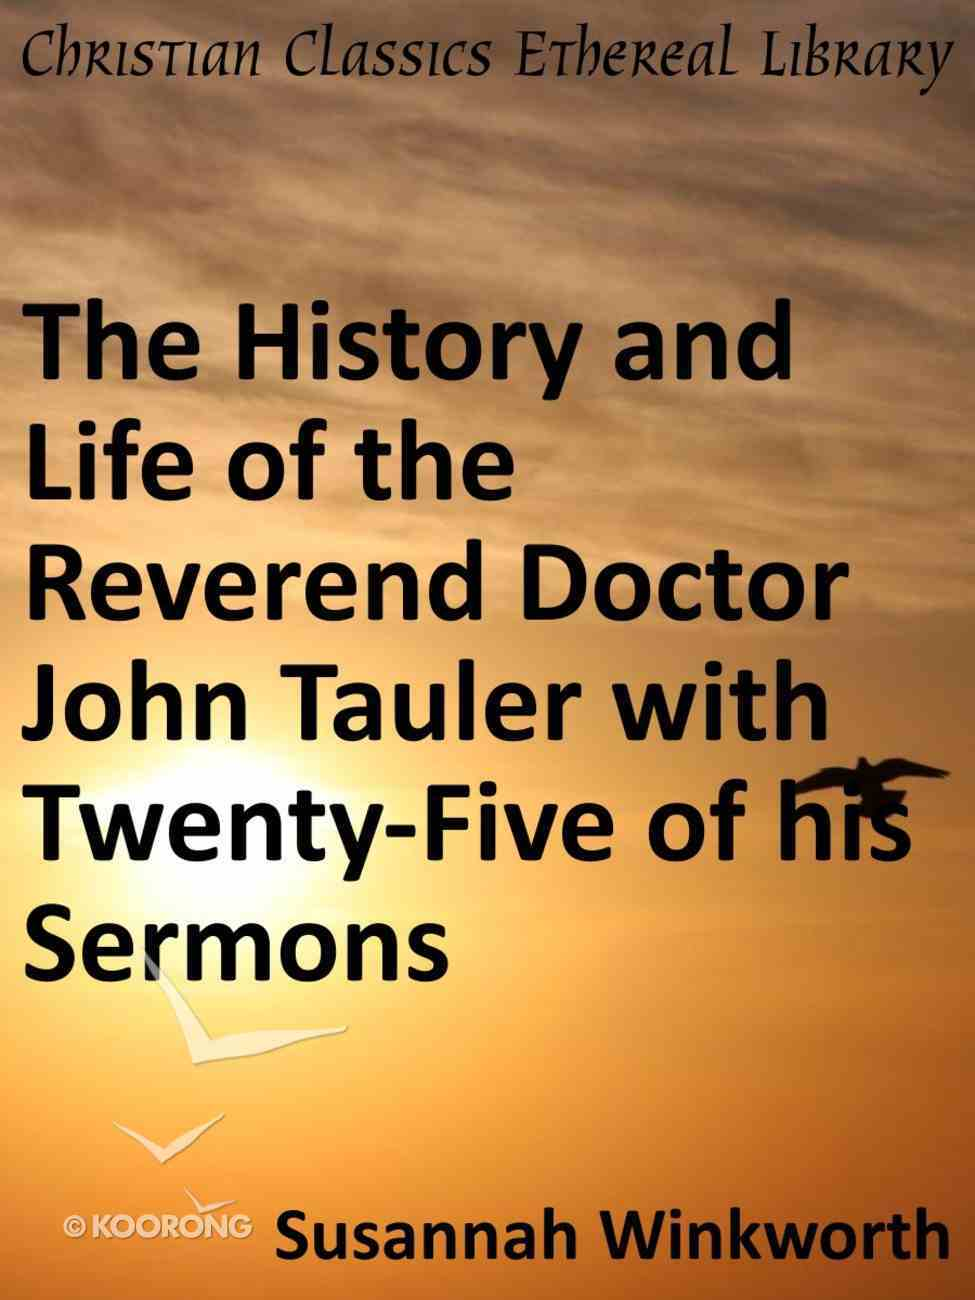 History and Life of the Reverend Doctor John Tauler With Twenty-Five of His Sermons eBook